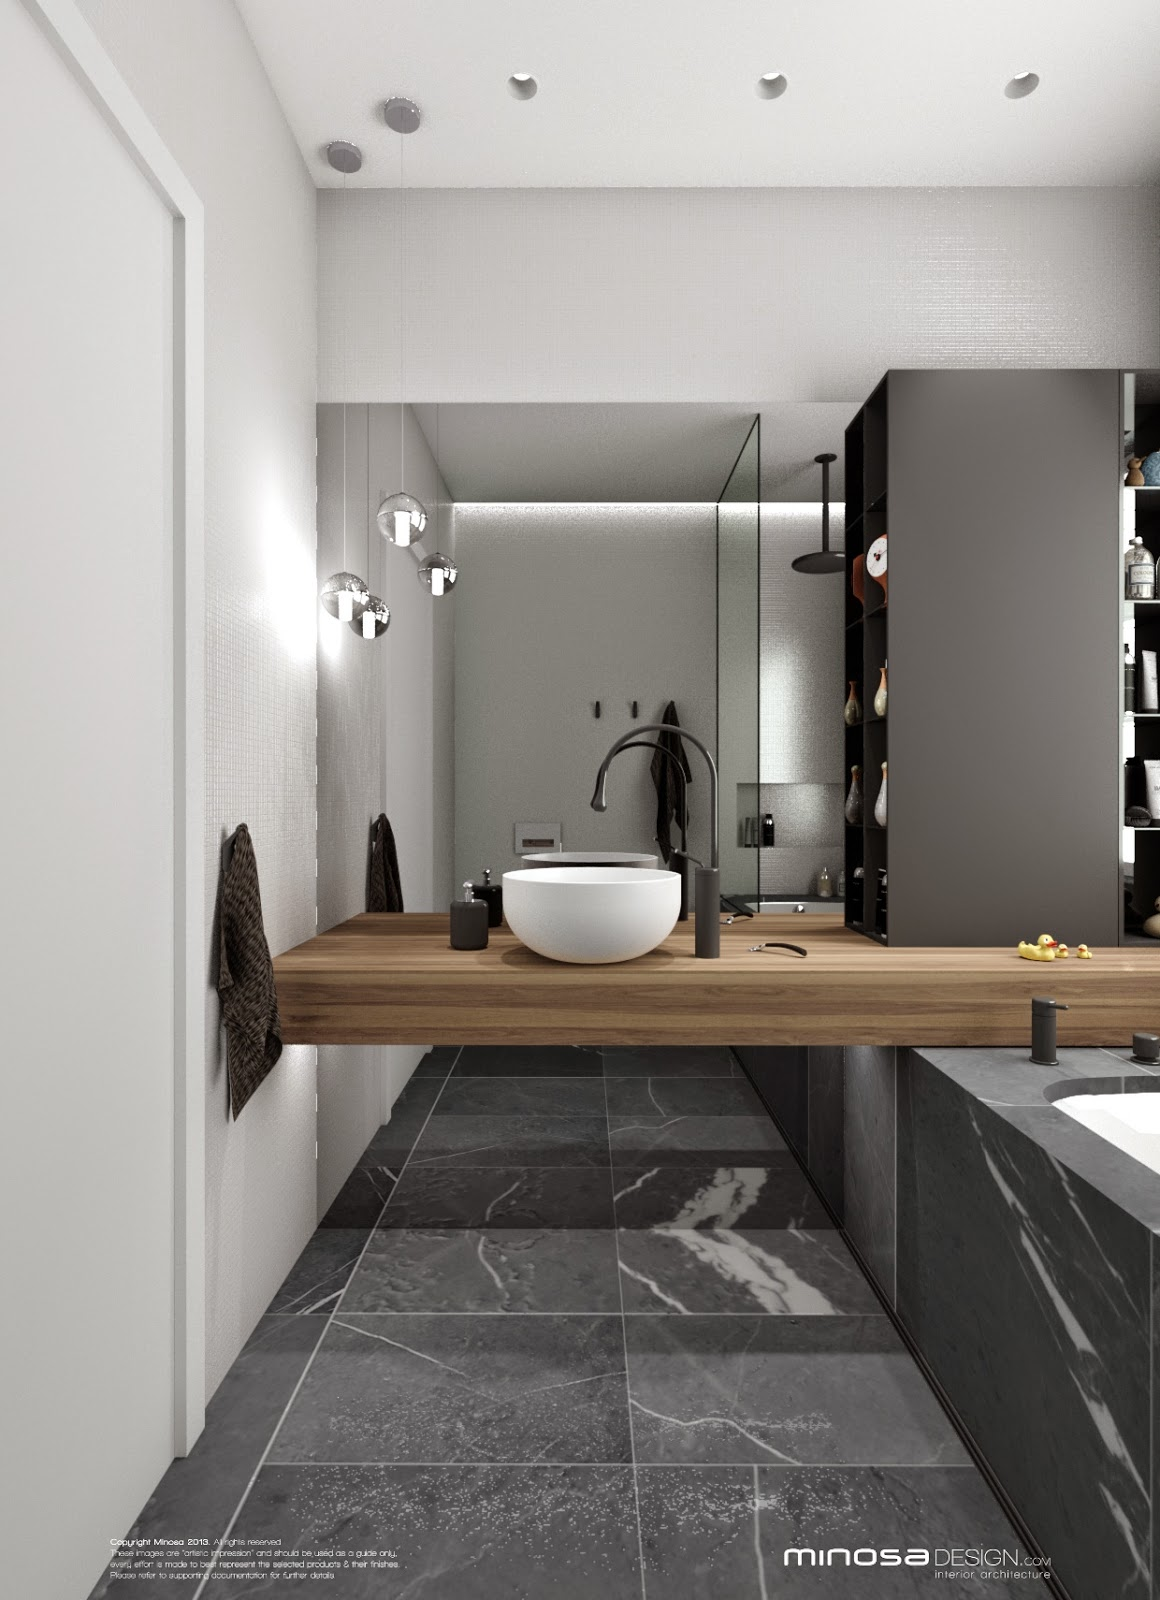 Minosa: Bathroom Design - Small space feels large